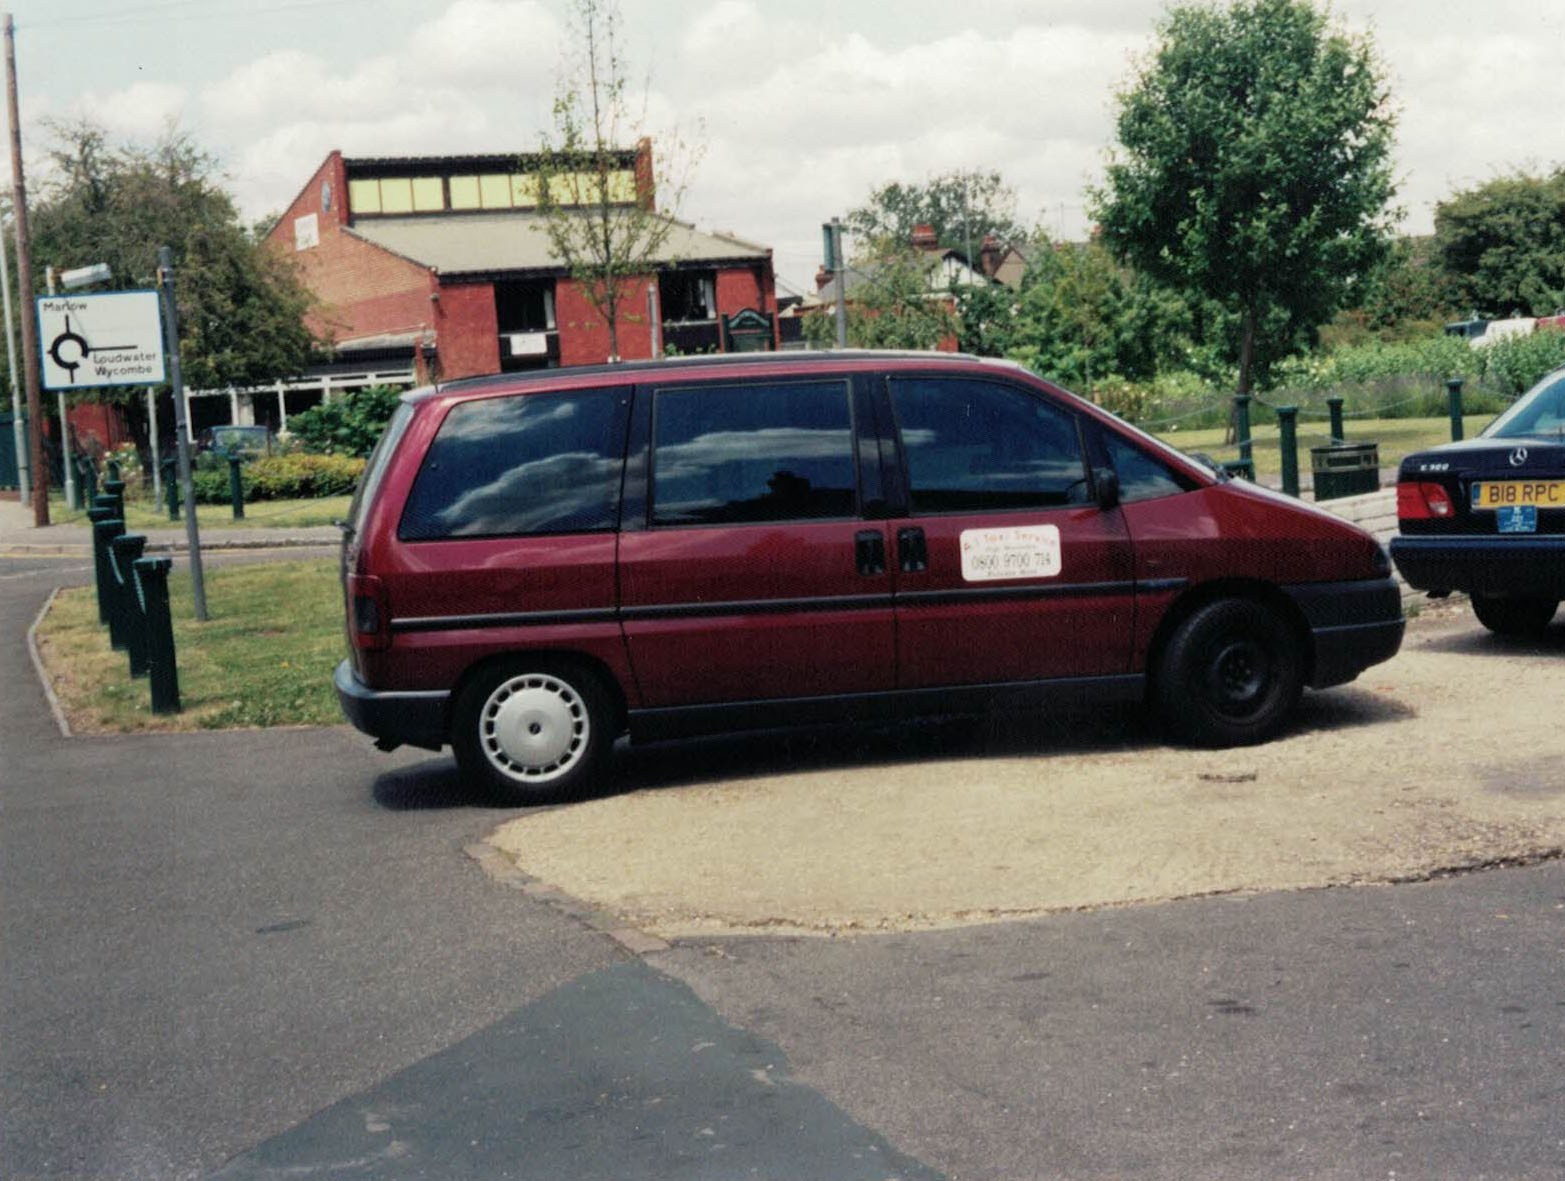 Taxis in Flackwell Heath - circa 2002